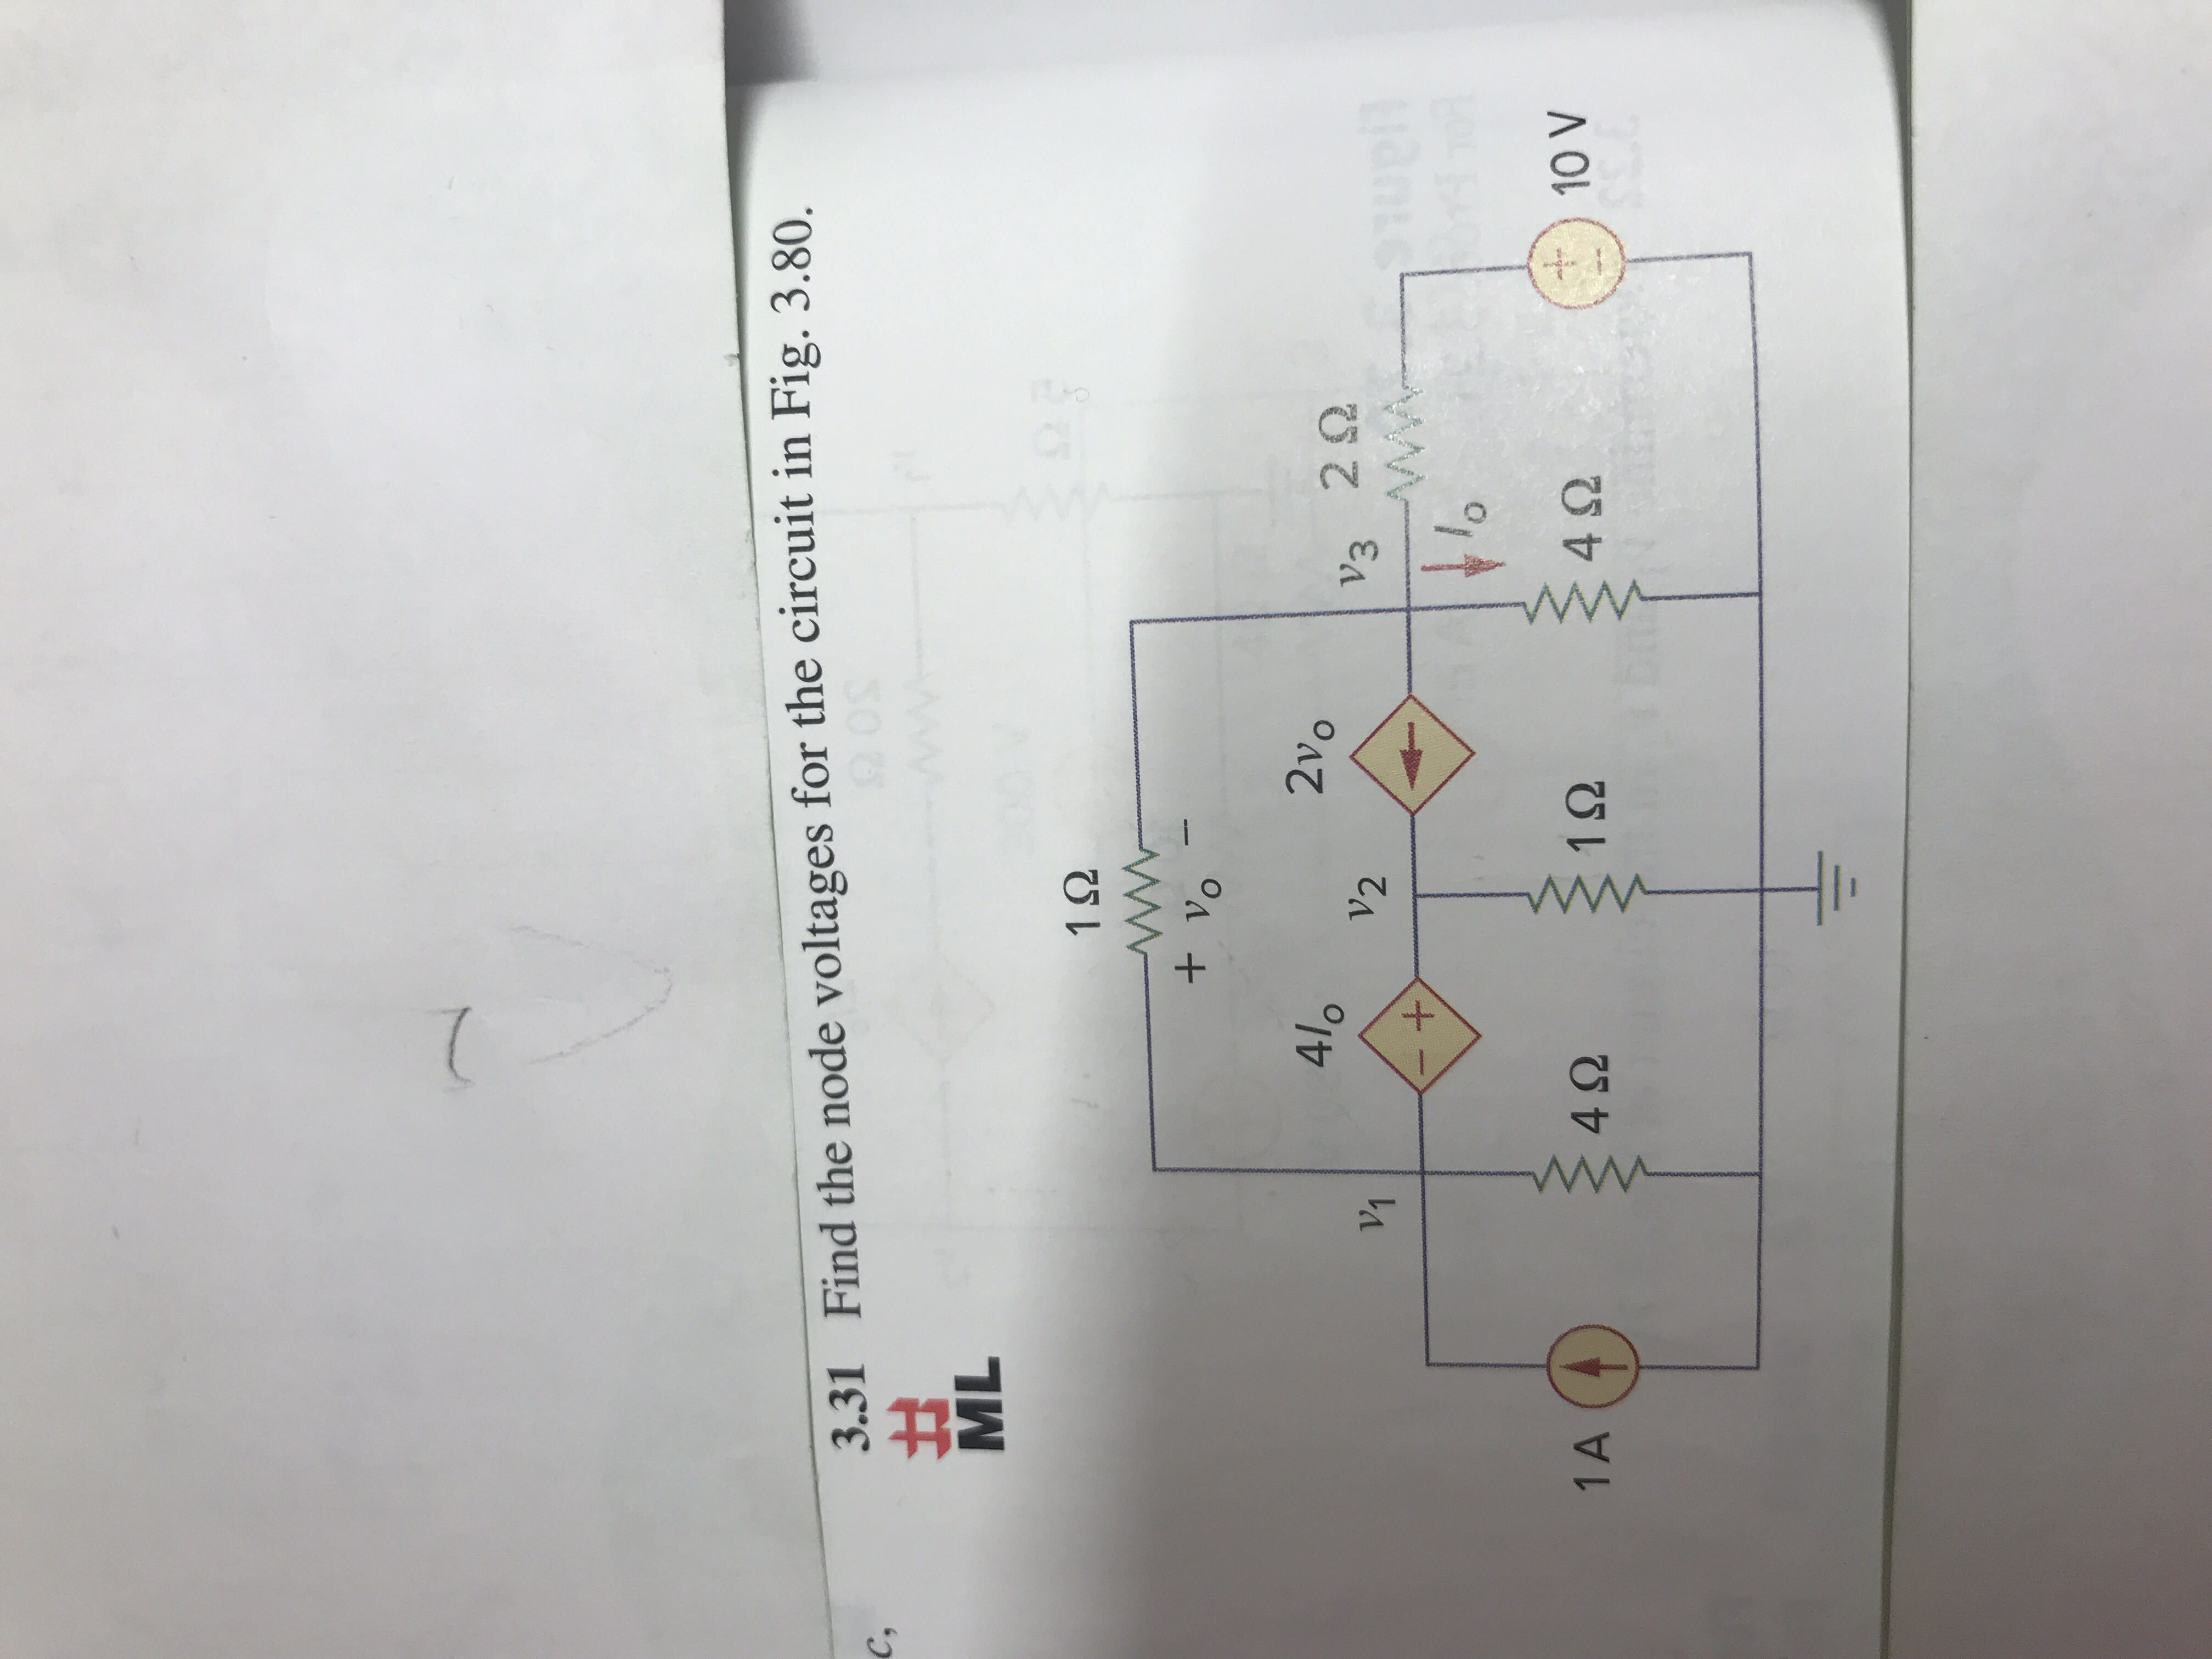 3.31 Find the node voltages for the circuit in Fig. 3.80. C, ML 1S2 4lo 2v V1 V2 11o 4 92 4Ω 1S2 ÷) 10V 1 A